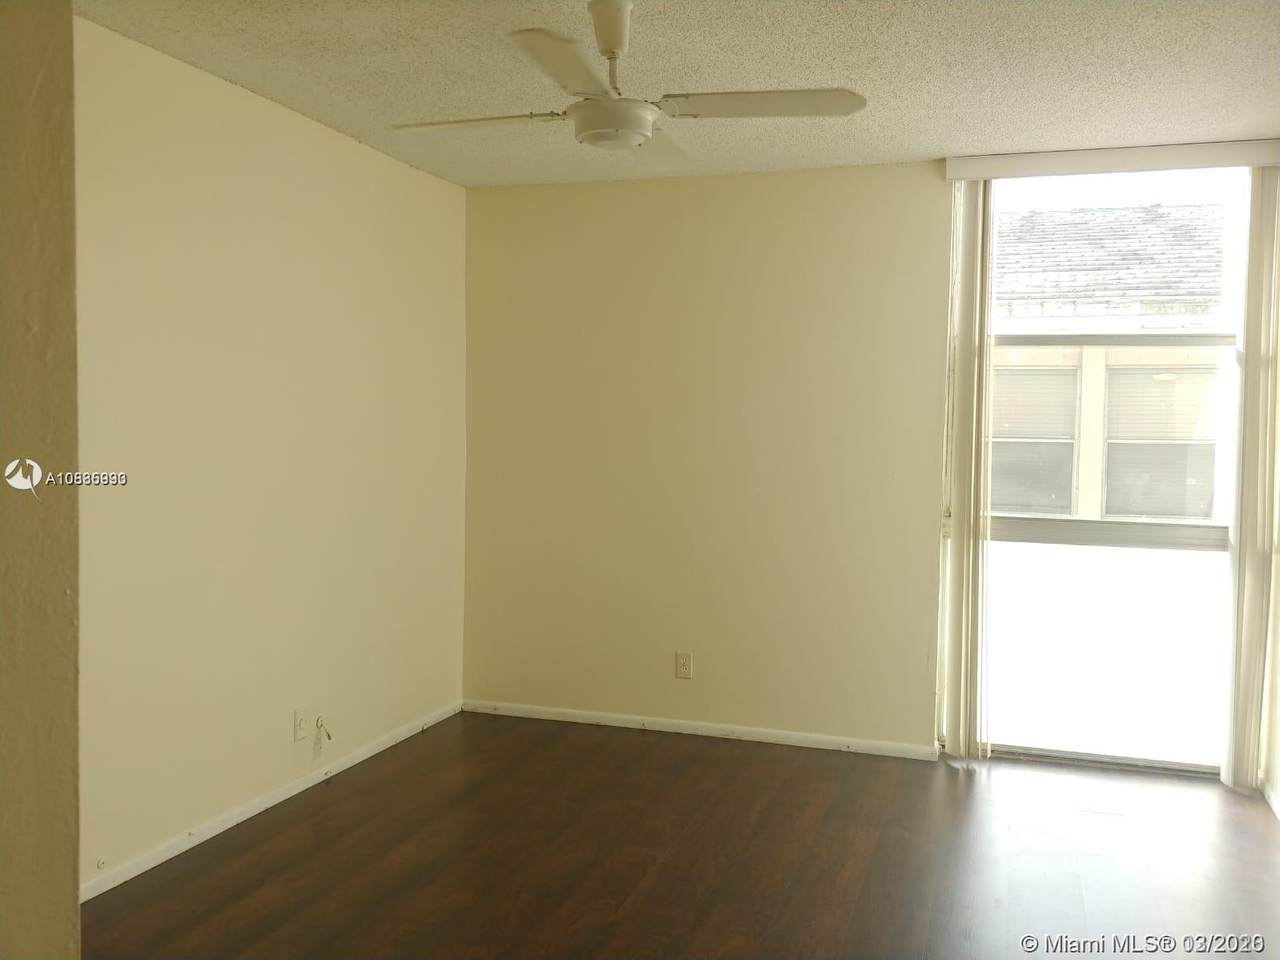 2029 46th Ave - Photo 1